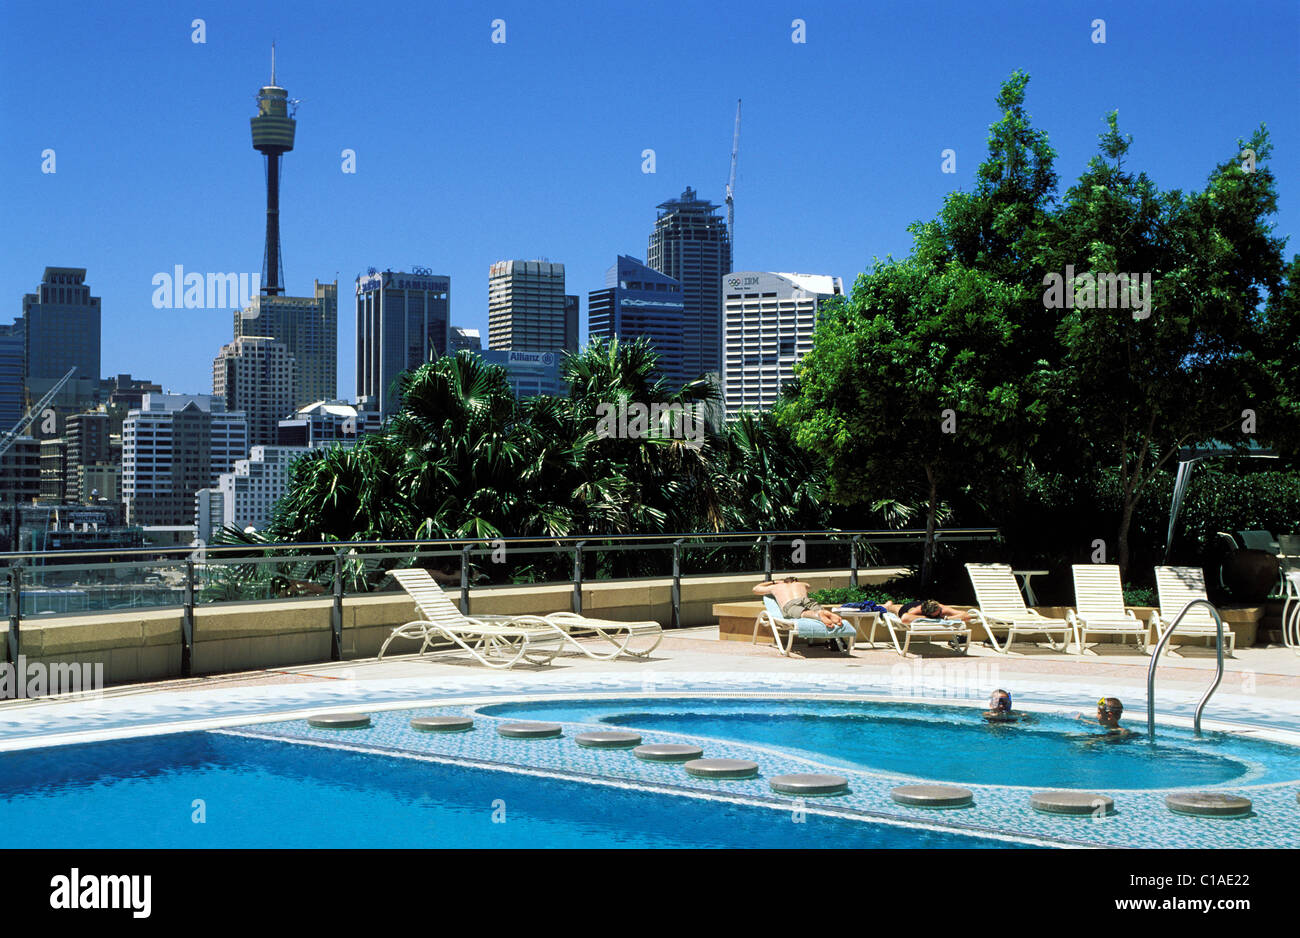 Australia New South Wales Sydney Swimming Pool Of The Starcity Stock Photo Royalty Free